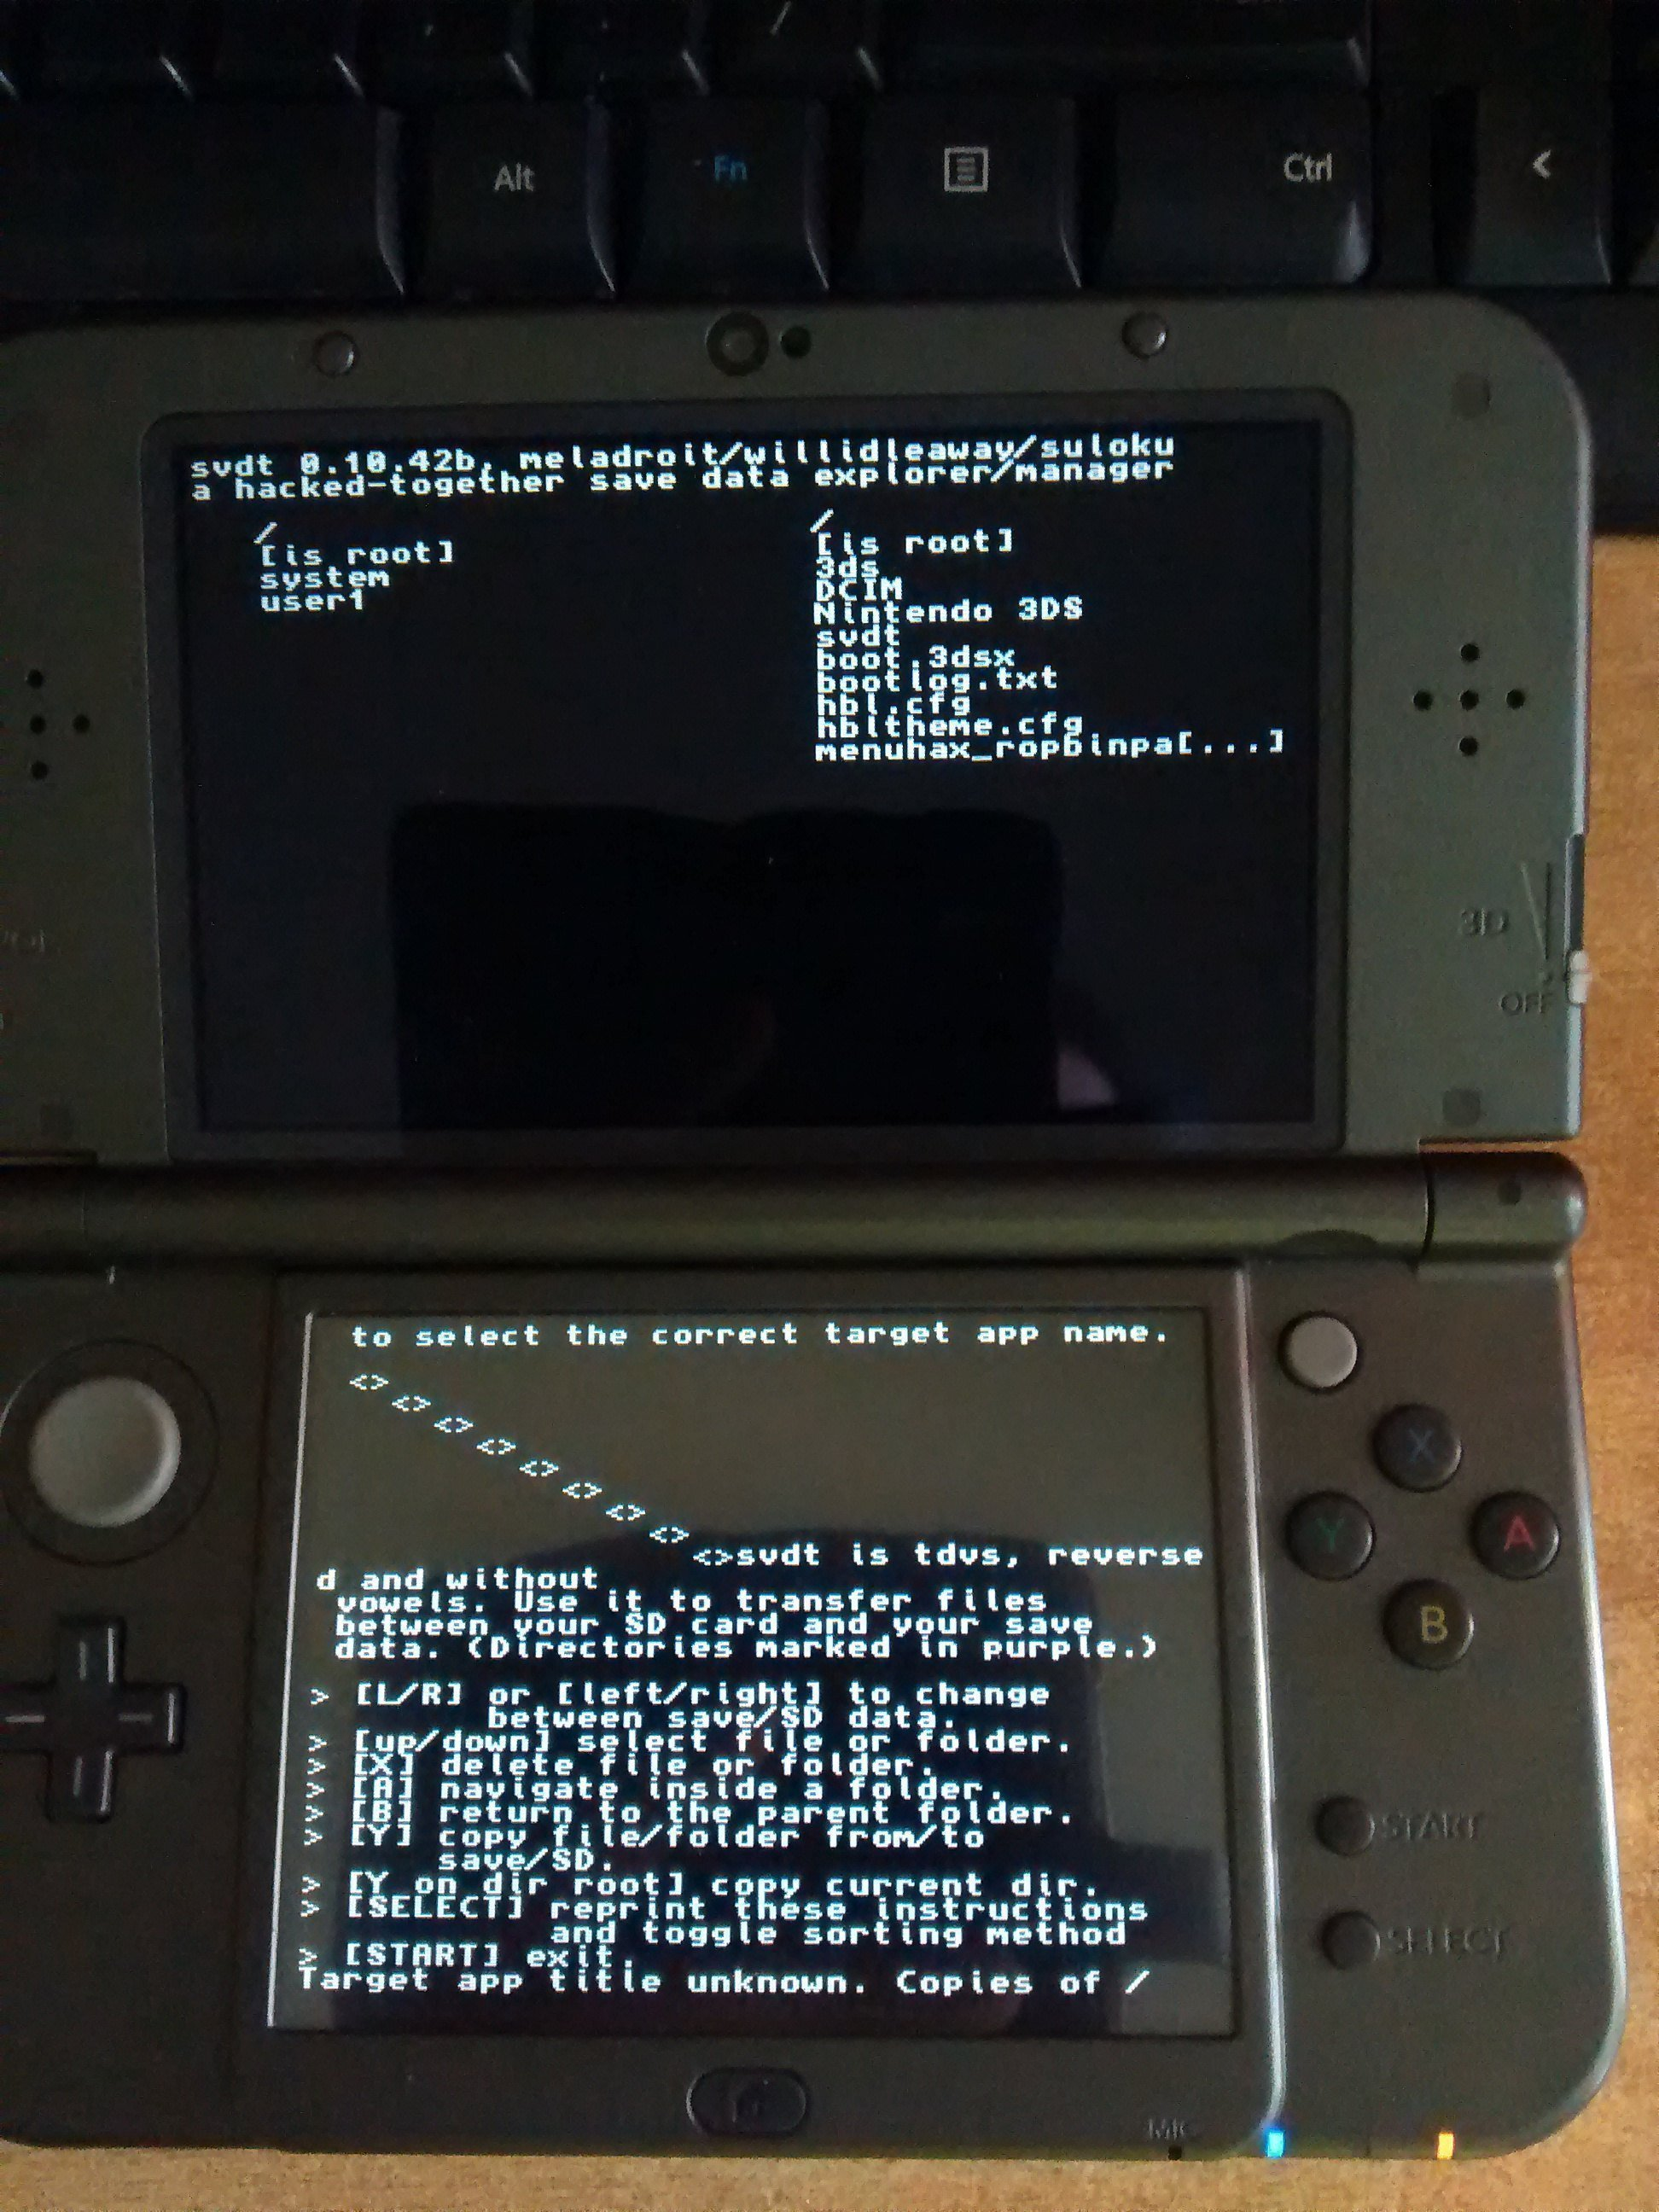 svdt 3ds